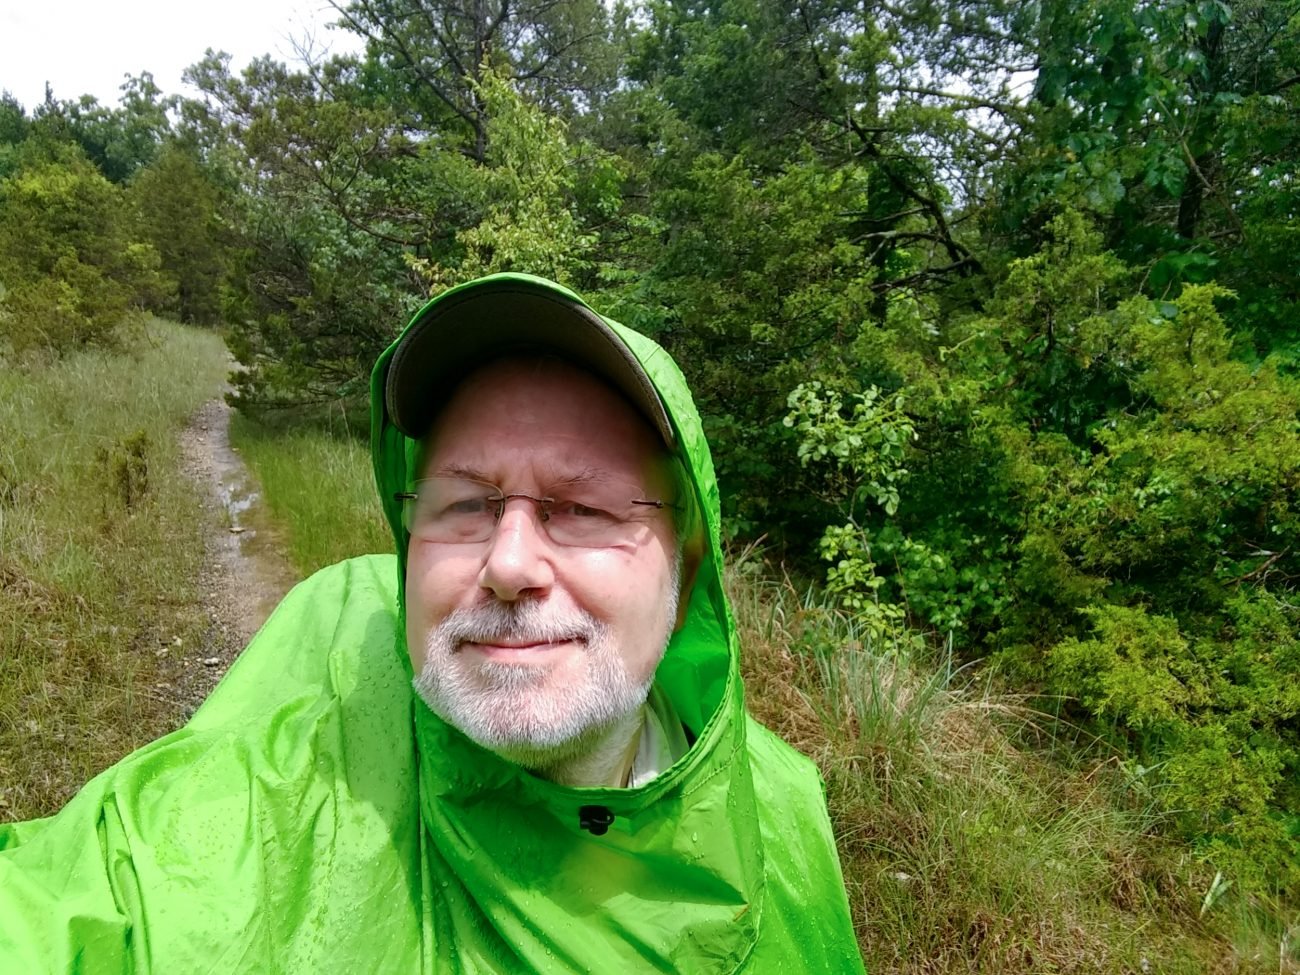 Gary Allman wearing a lime green rain poncho at Hercules Glades Wilderness.